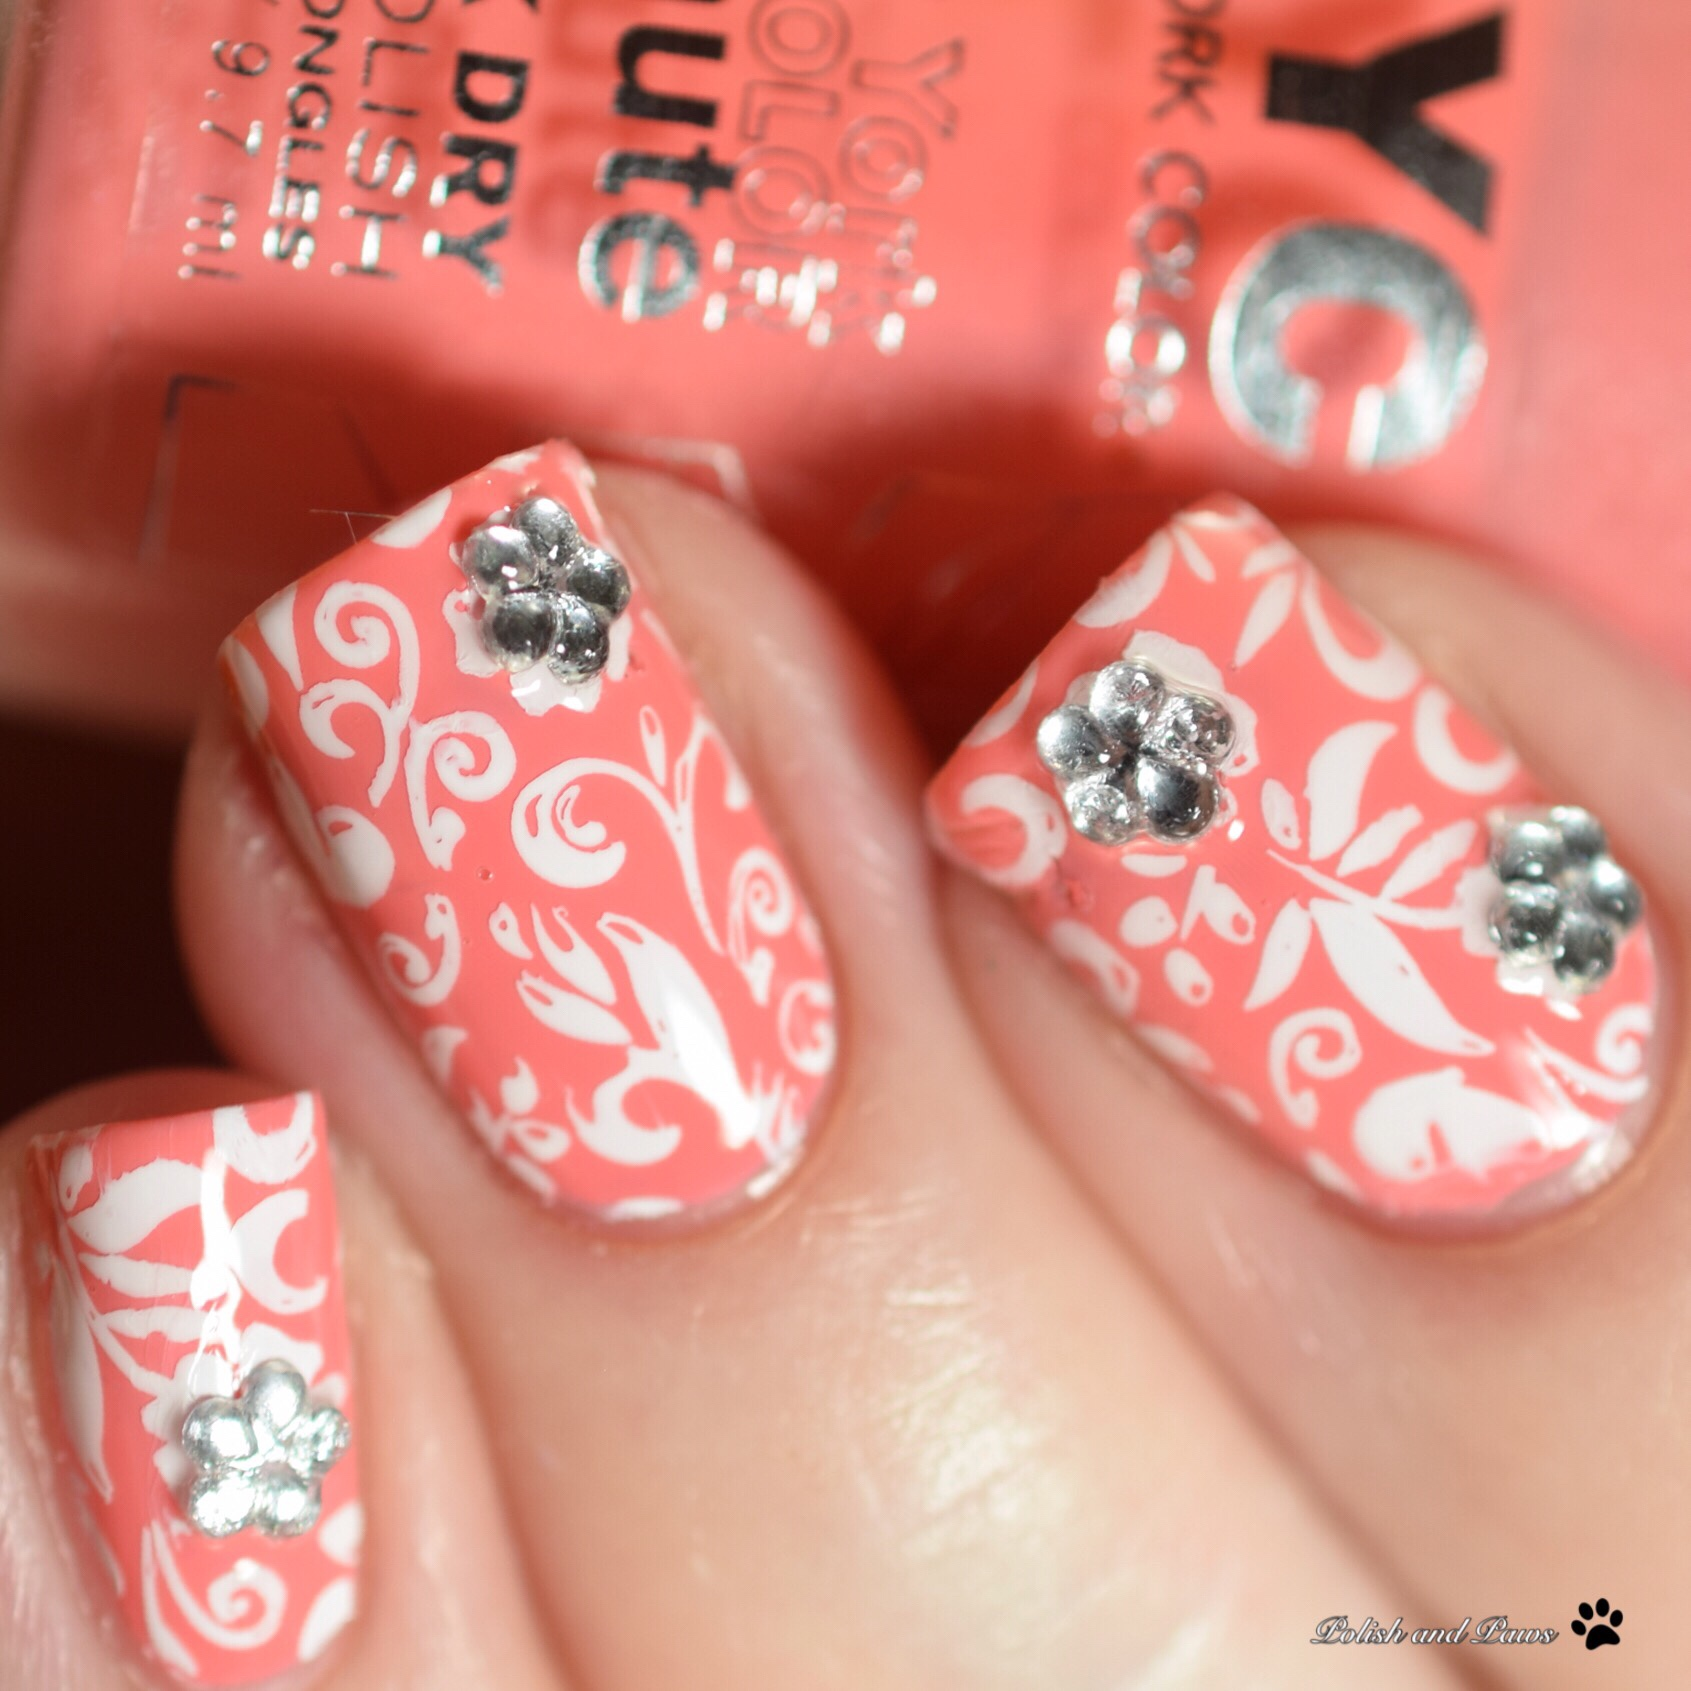 Polish and Paws Digital Dozen Nail Art Peach Flower Nails